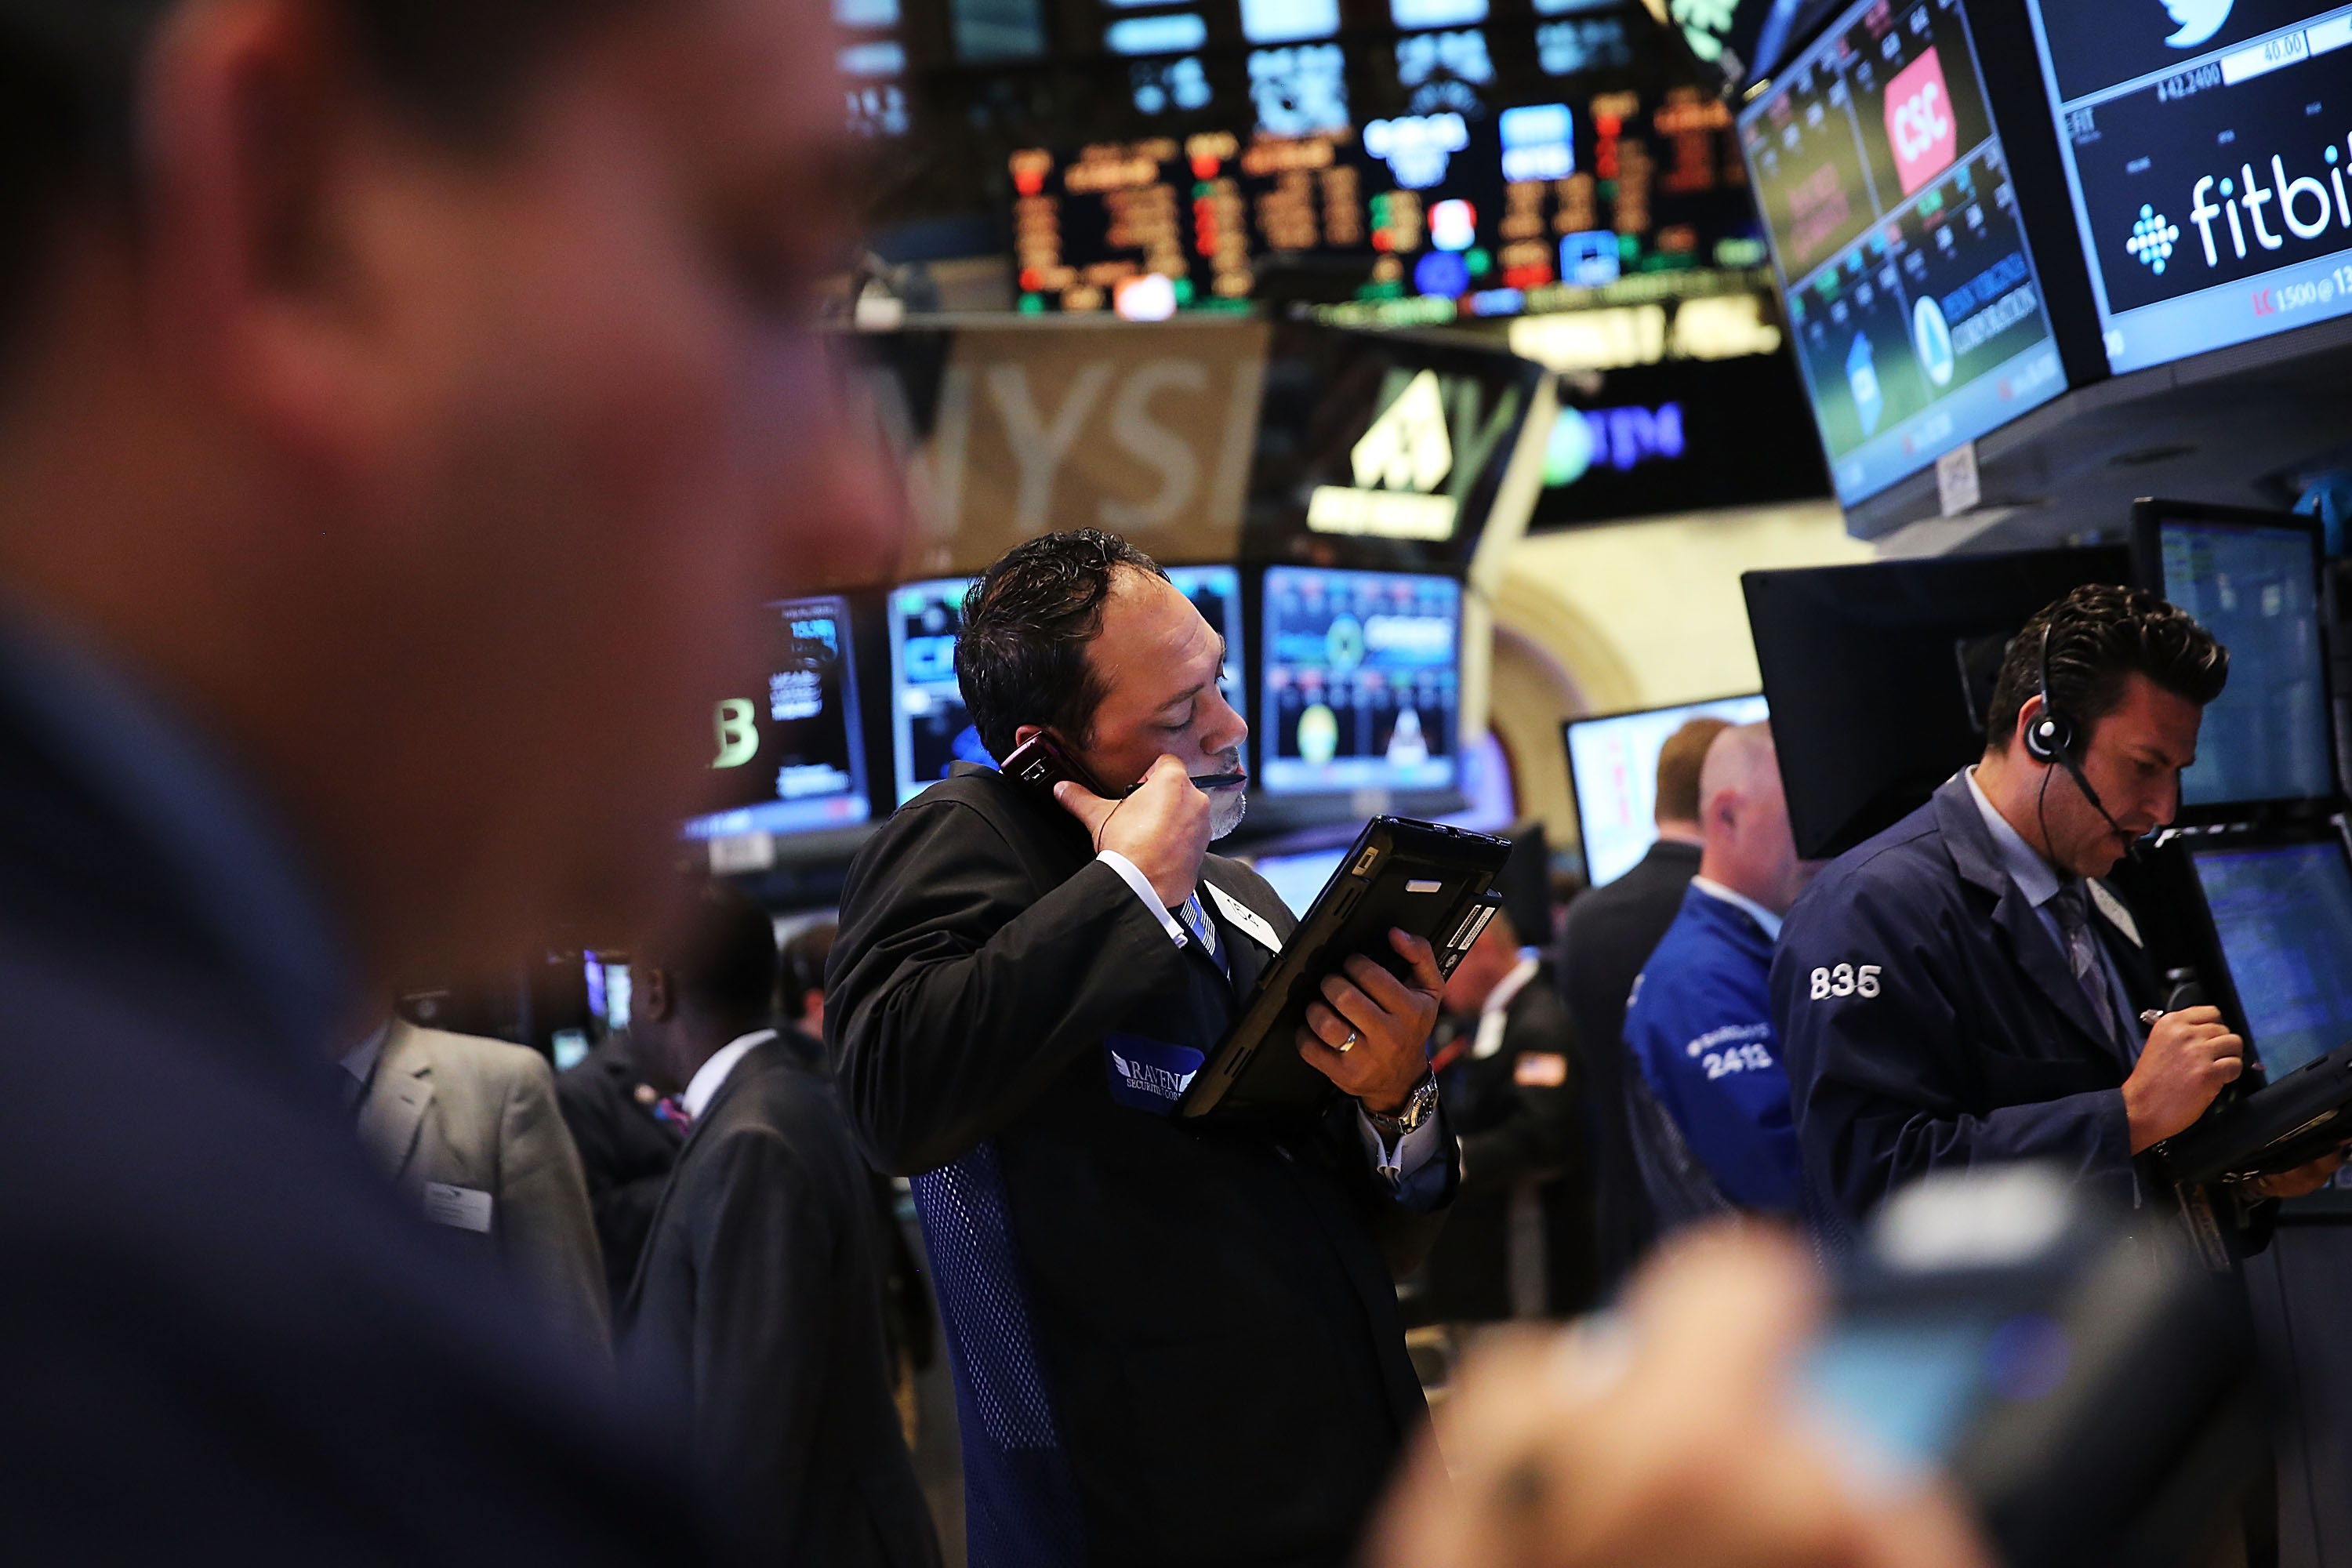 Traders work on the floor of the New York Stock Exchange on July 6, 2015. (Getty)